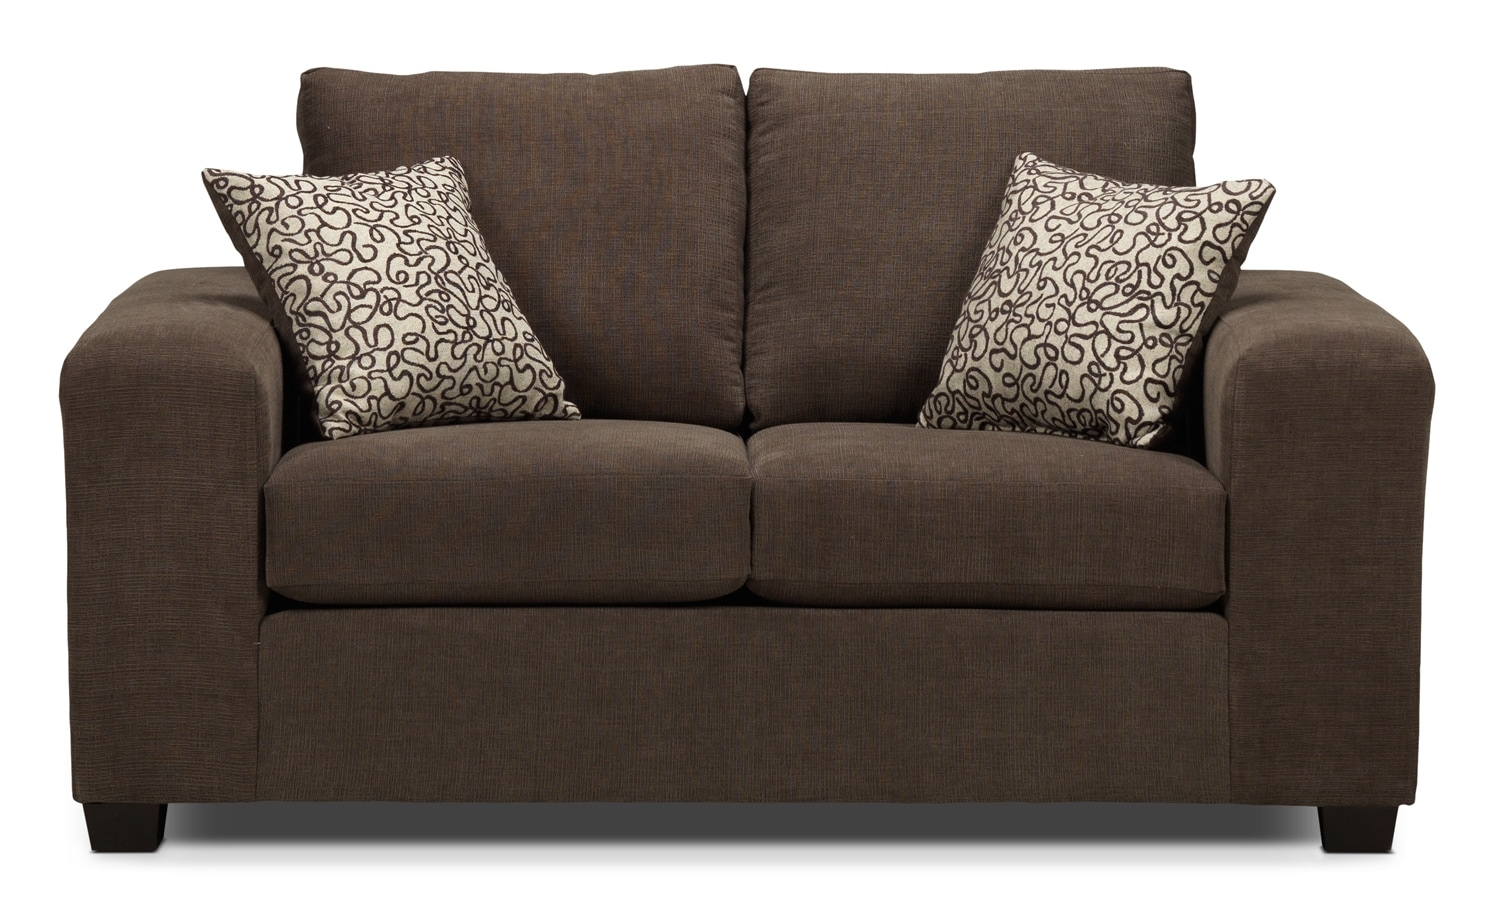 Fava Loveseat - Light Brown